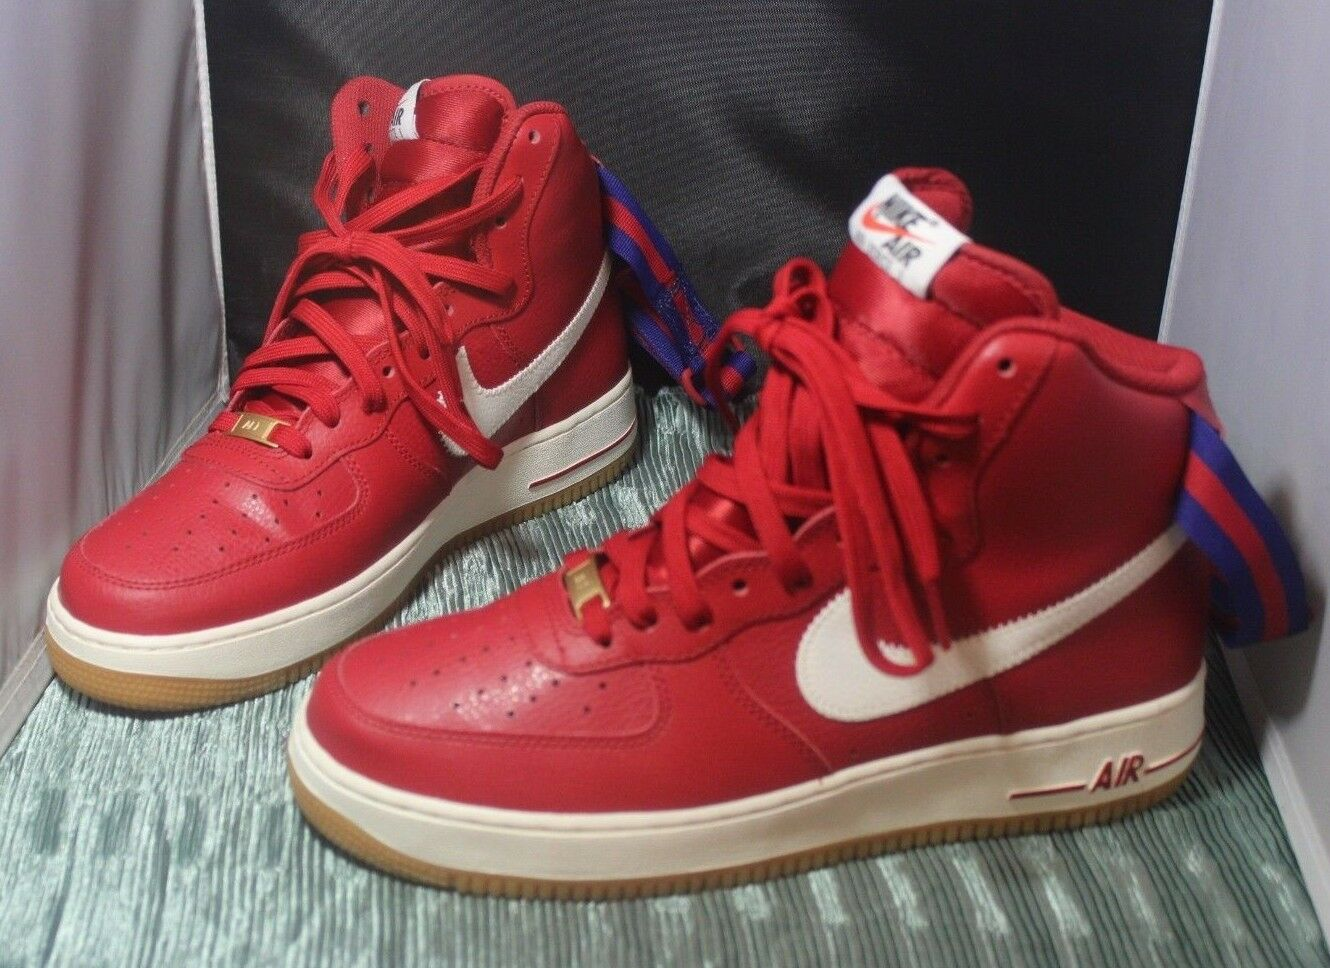 Nike Air Force 1 High '07 Red Royal Sail Gum 315121 605 Size 9 No Box